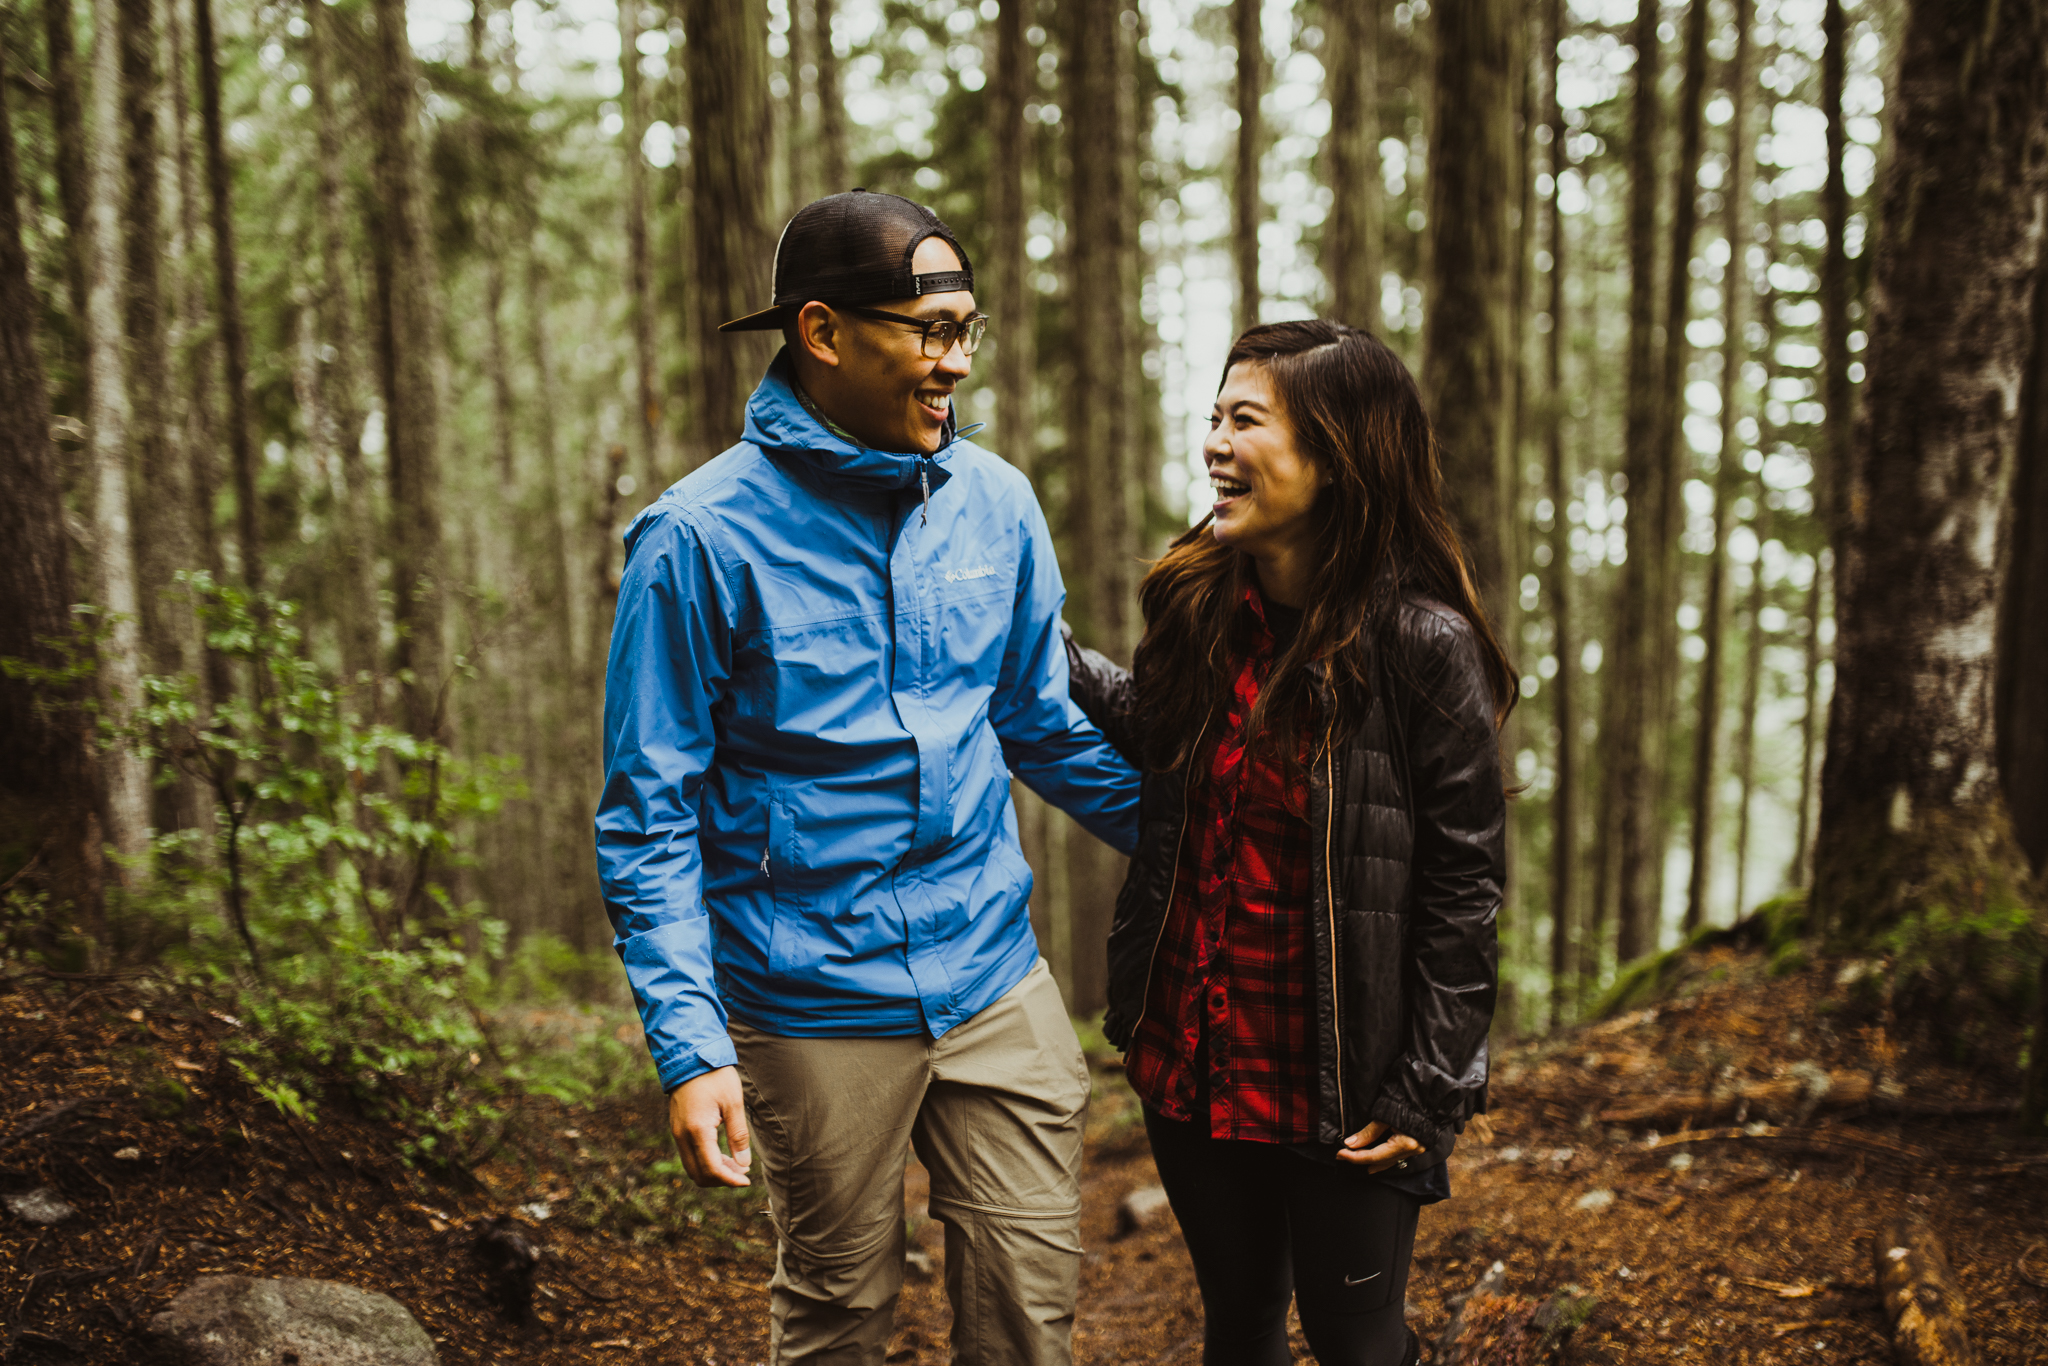 ©Isaiah-&-Taylor-Photography---Hidden-Lake-Cascade-Mountains-Engagement,-Washington-020.jpg